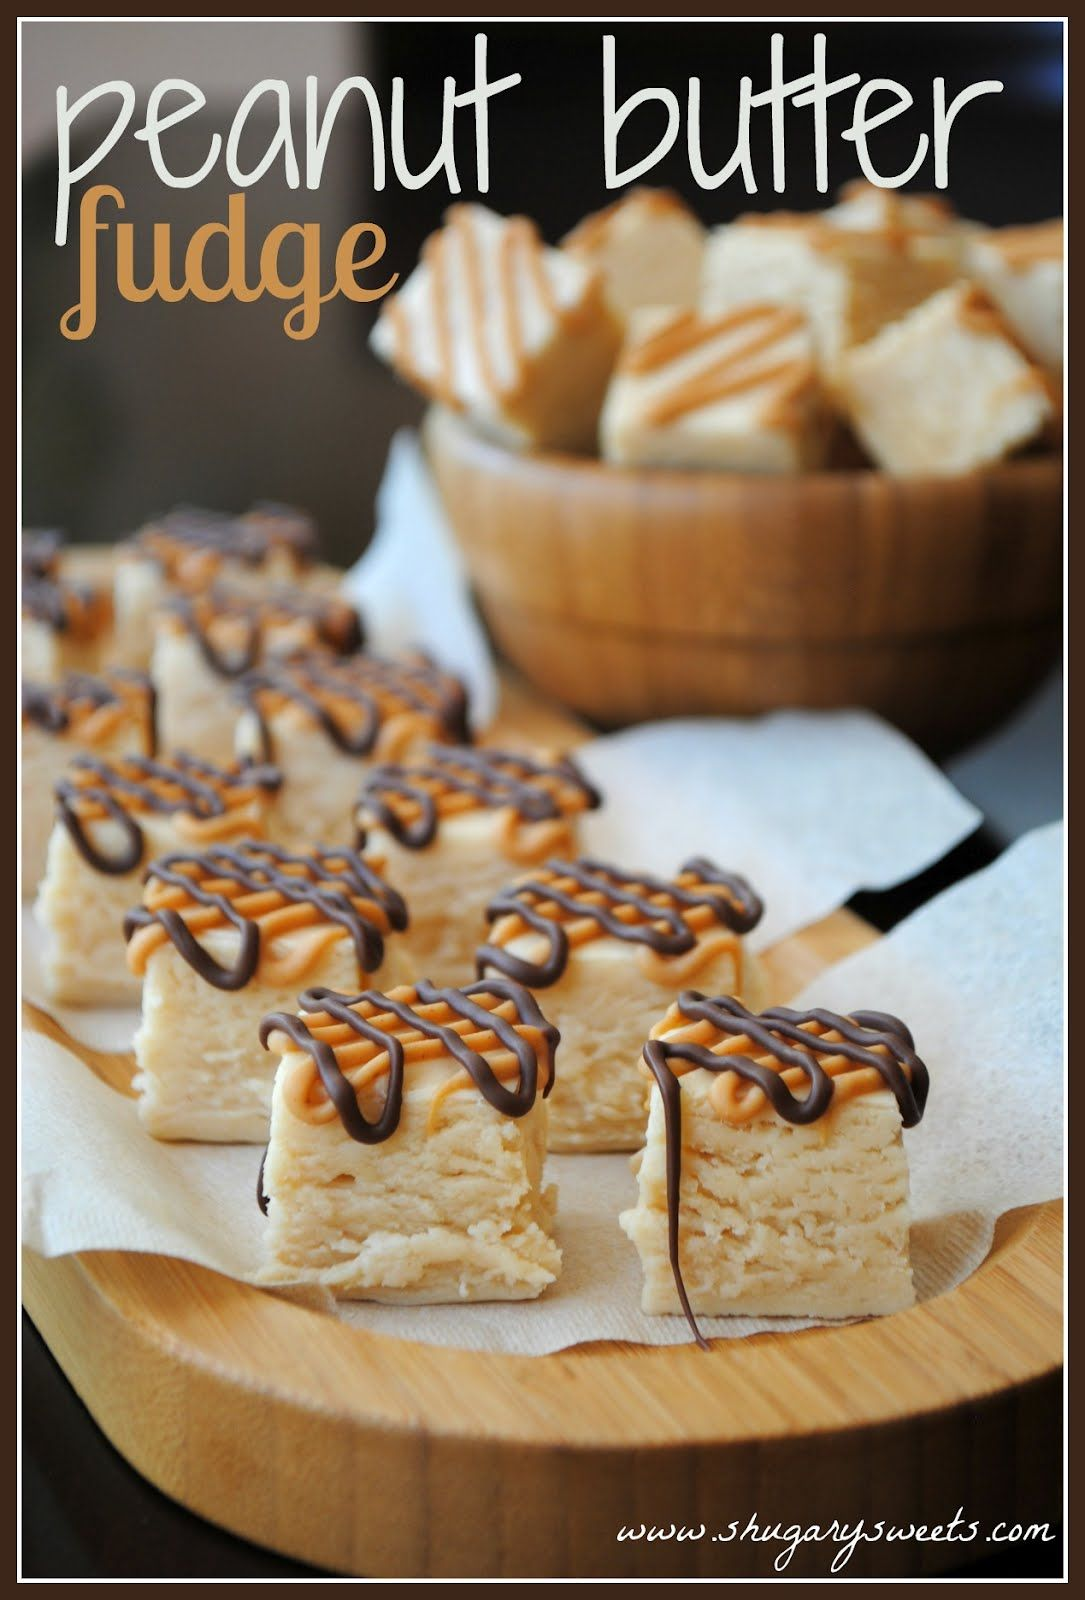 Can't wait to try this Peanut Butter Fudge!! - from @Shugarysweets